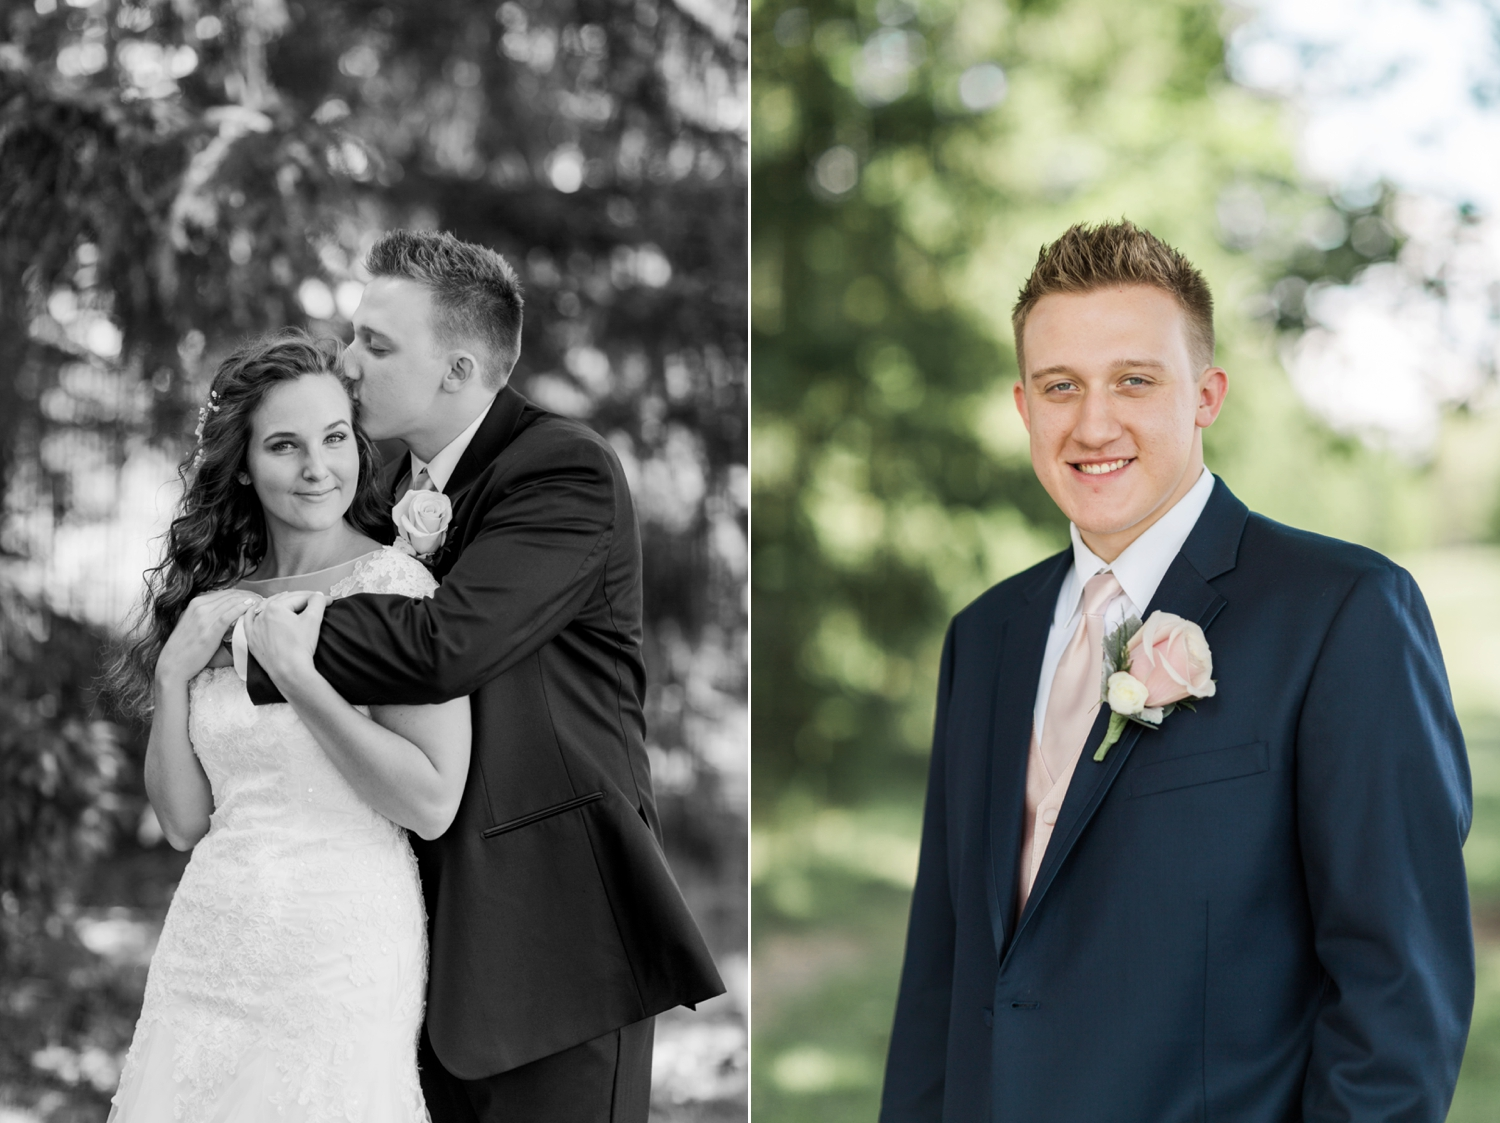 Community_Life_Center_Indianapolis_Indiana_Wedding_Photographer_Chloe_Luka_Photography_6907.jpg